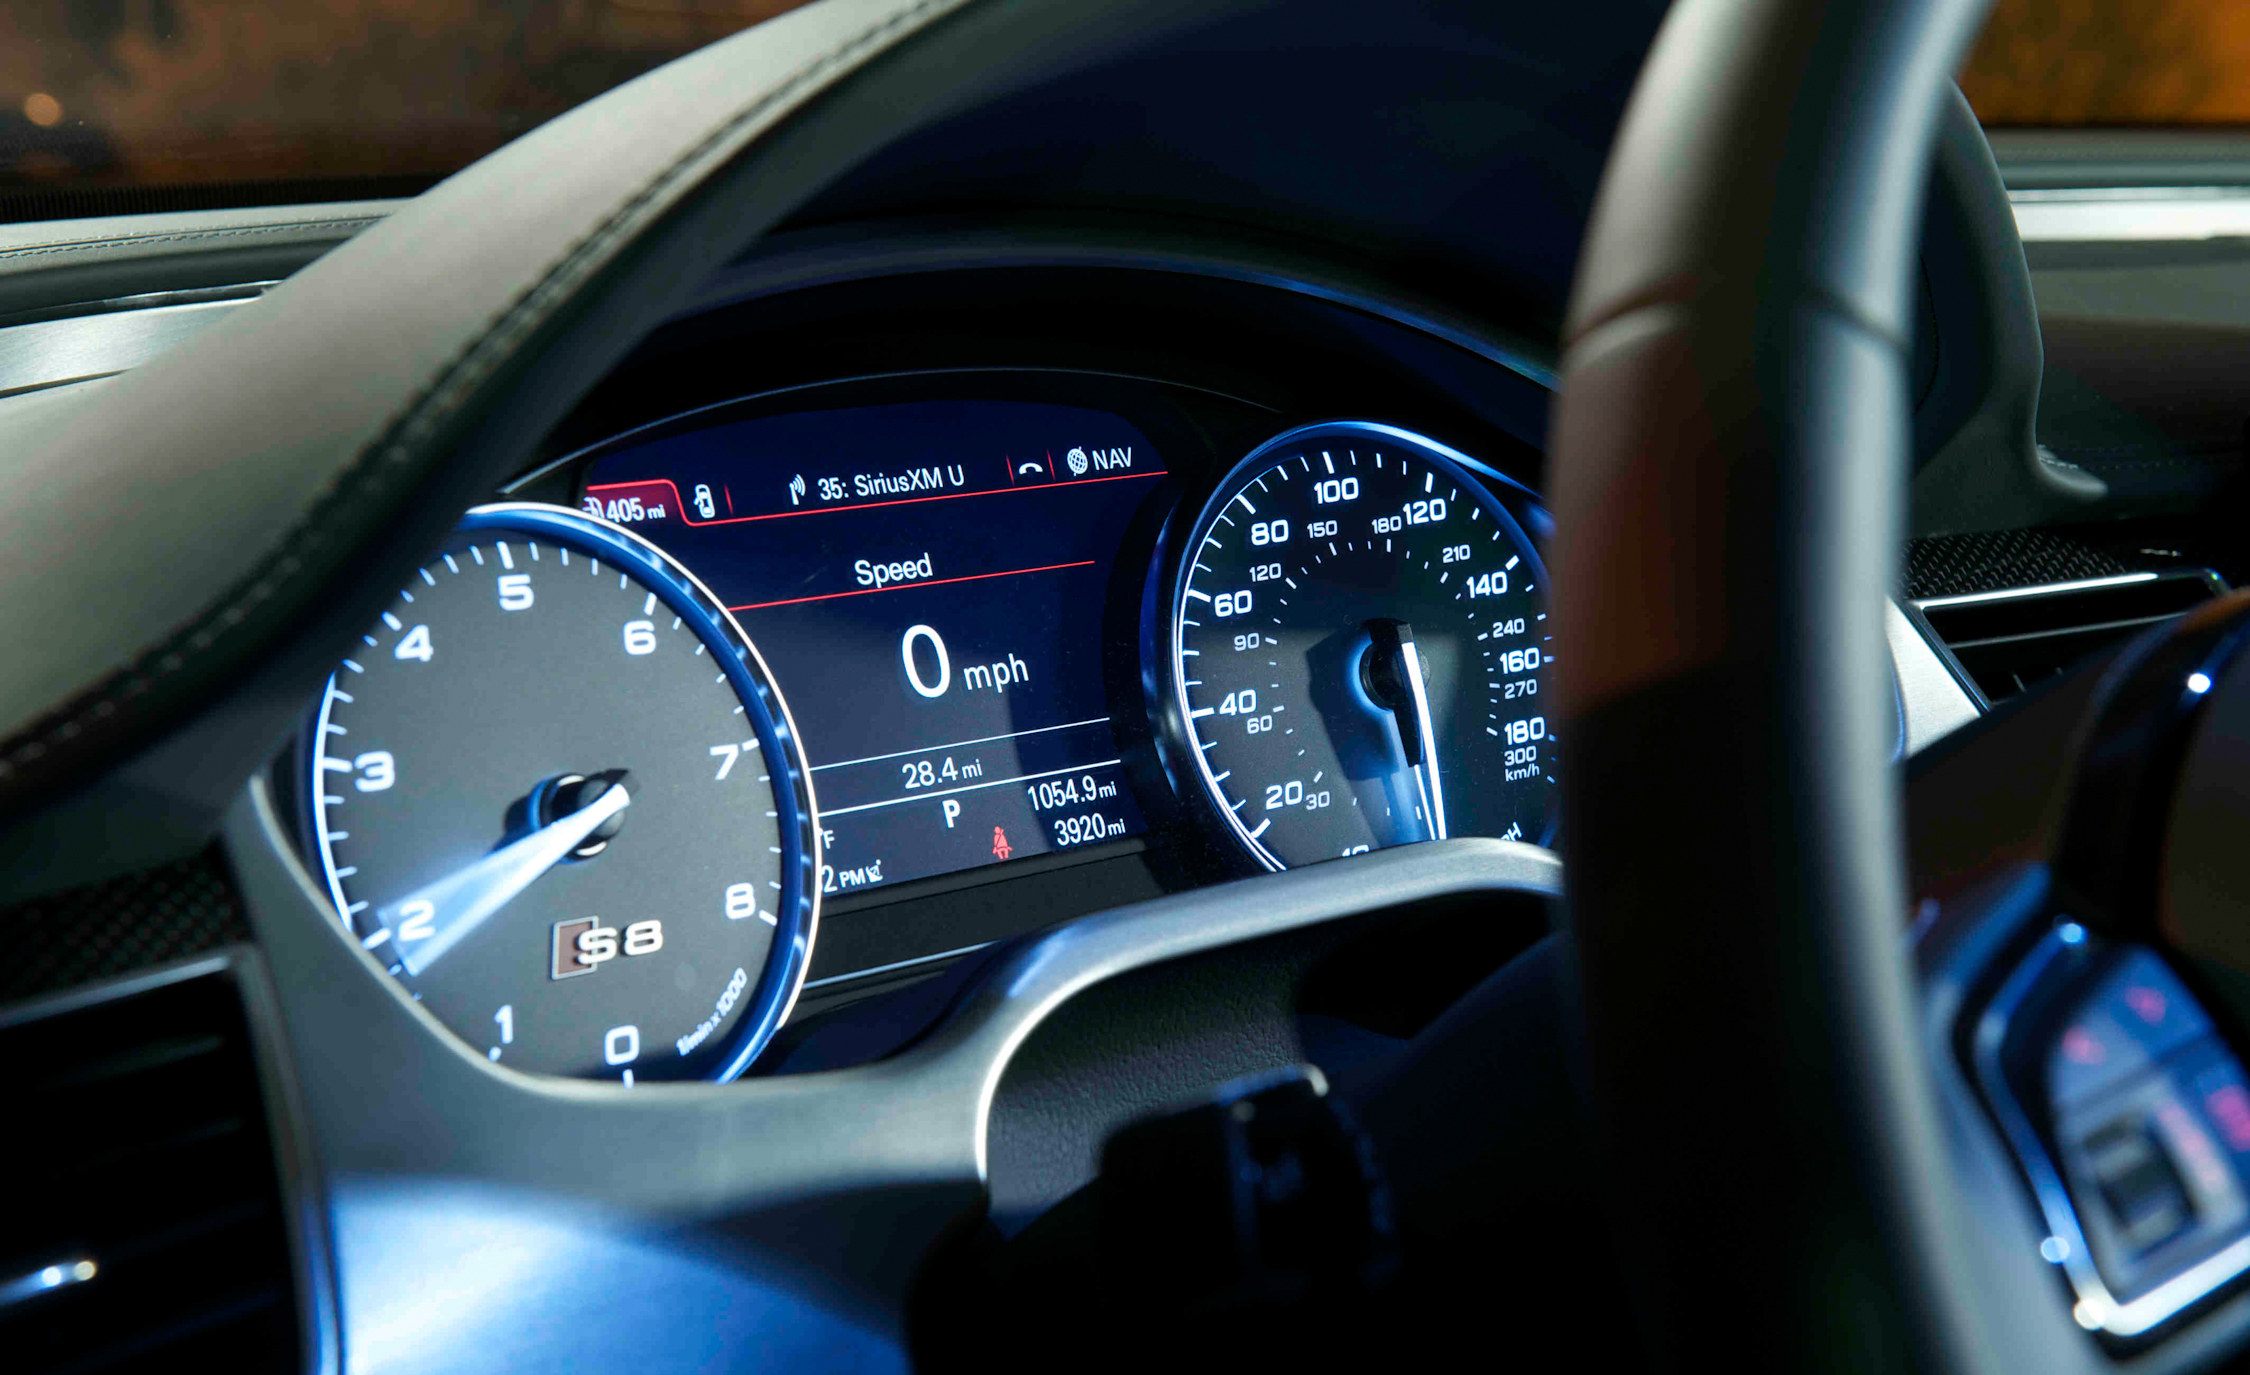 2013 Audi S8 Interior View Speedometer (Photo 12 of 25)